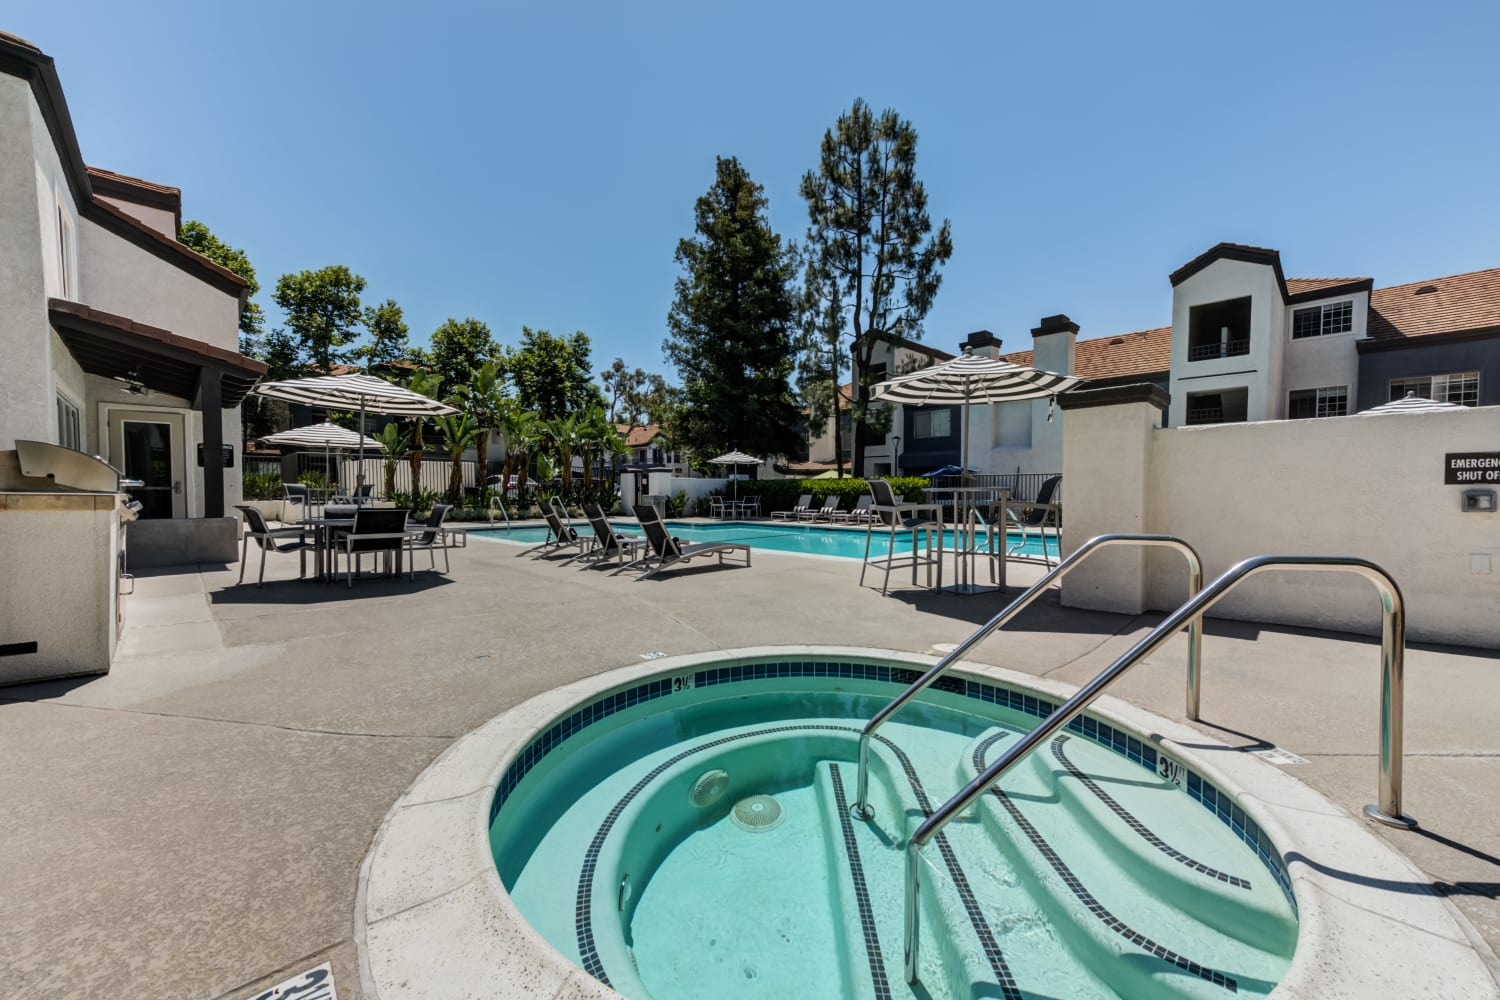 Hot tub sauna by community swimming pool at Sierra Heights Apartments in Rancho Cucamonga, CA